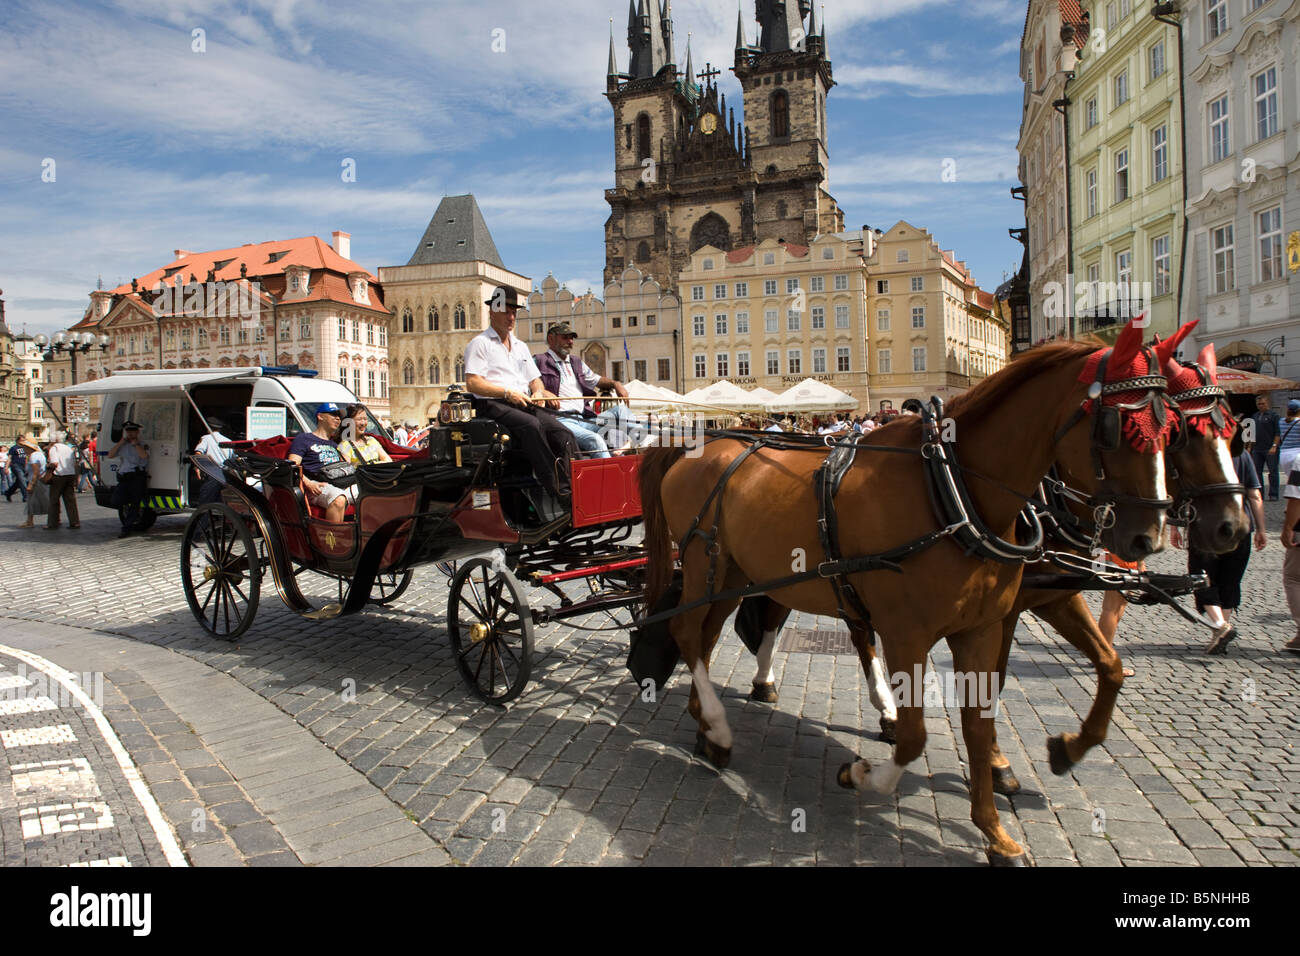 6874ceb7220 HORSE DRAWN CARRIAGE OLD TOWN SQUARE STARE MESTO OLD TOWN PRAGUE CZECH  REPUBLIC